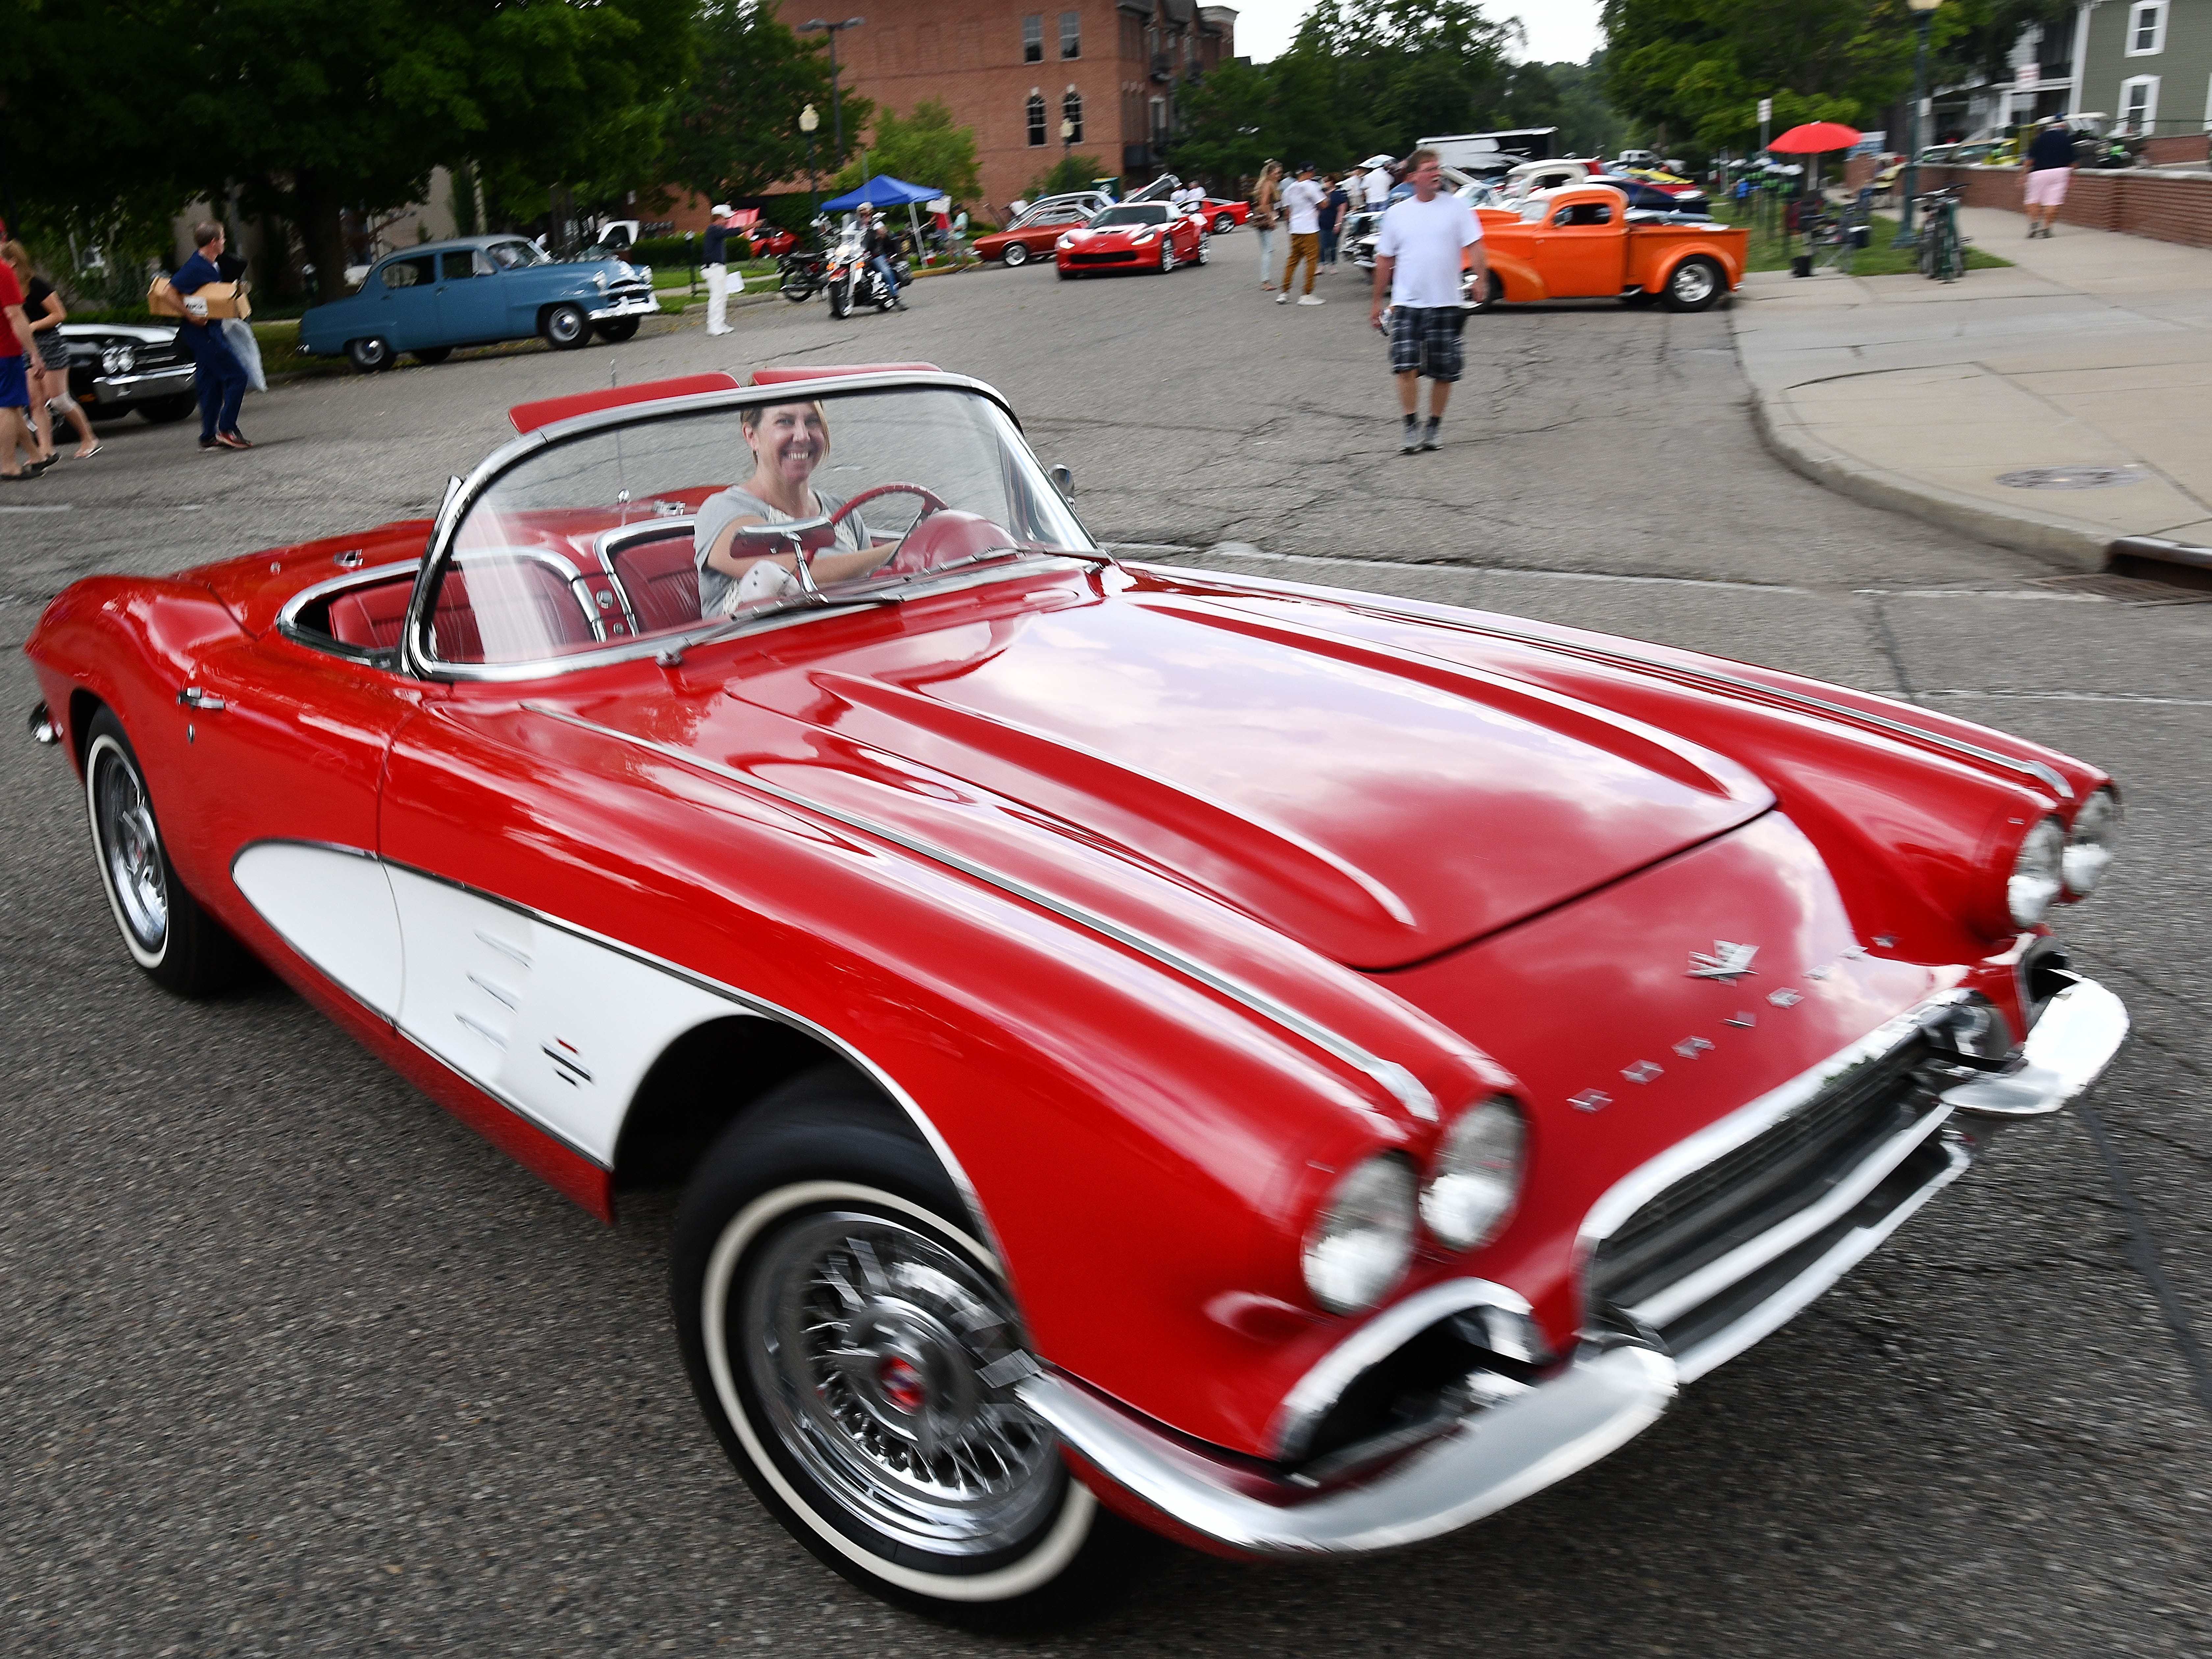 A little red Corvette cruises through the 19th annual Rockin Rods n' Rochester.